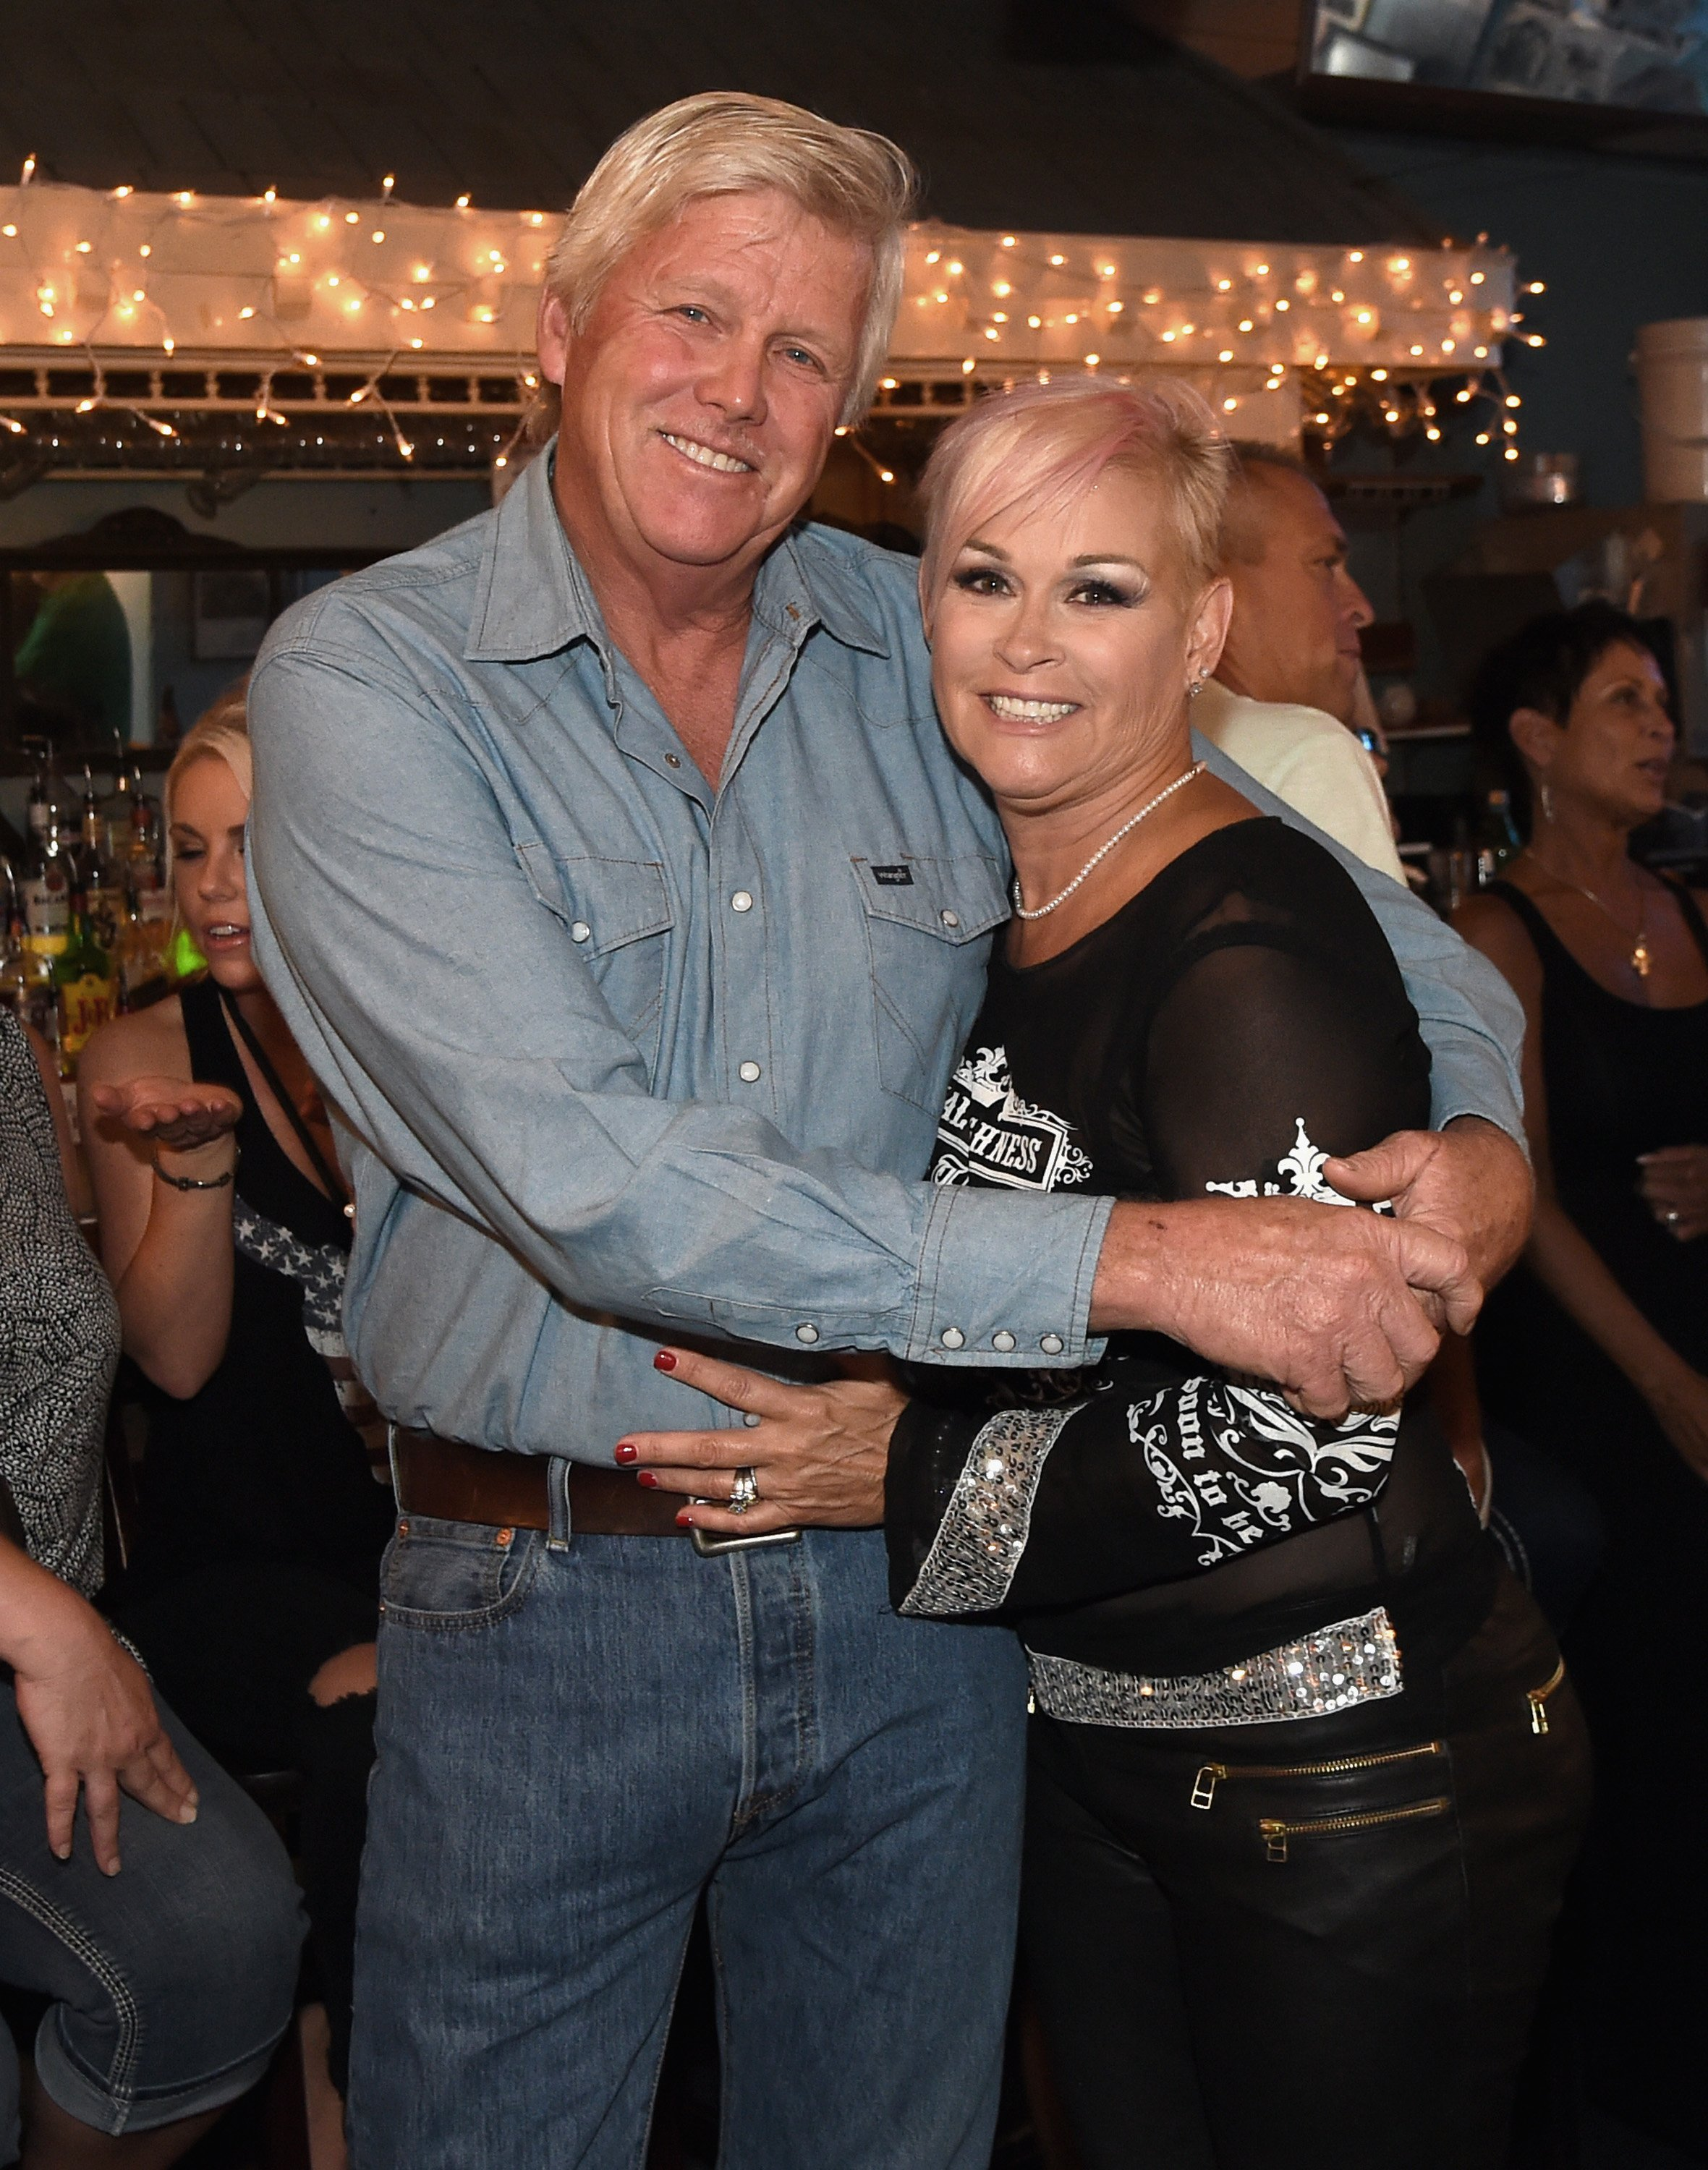 """Lorrie Morgan and Randy White at """"An Intimate Night With The Morgans"""" concert, August 2017 